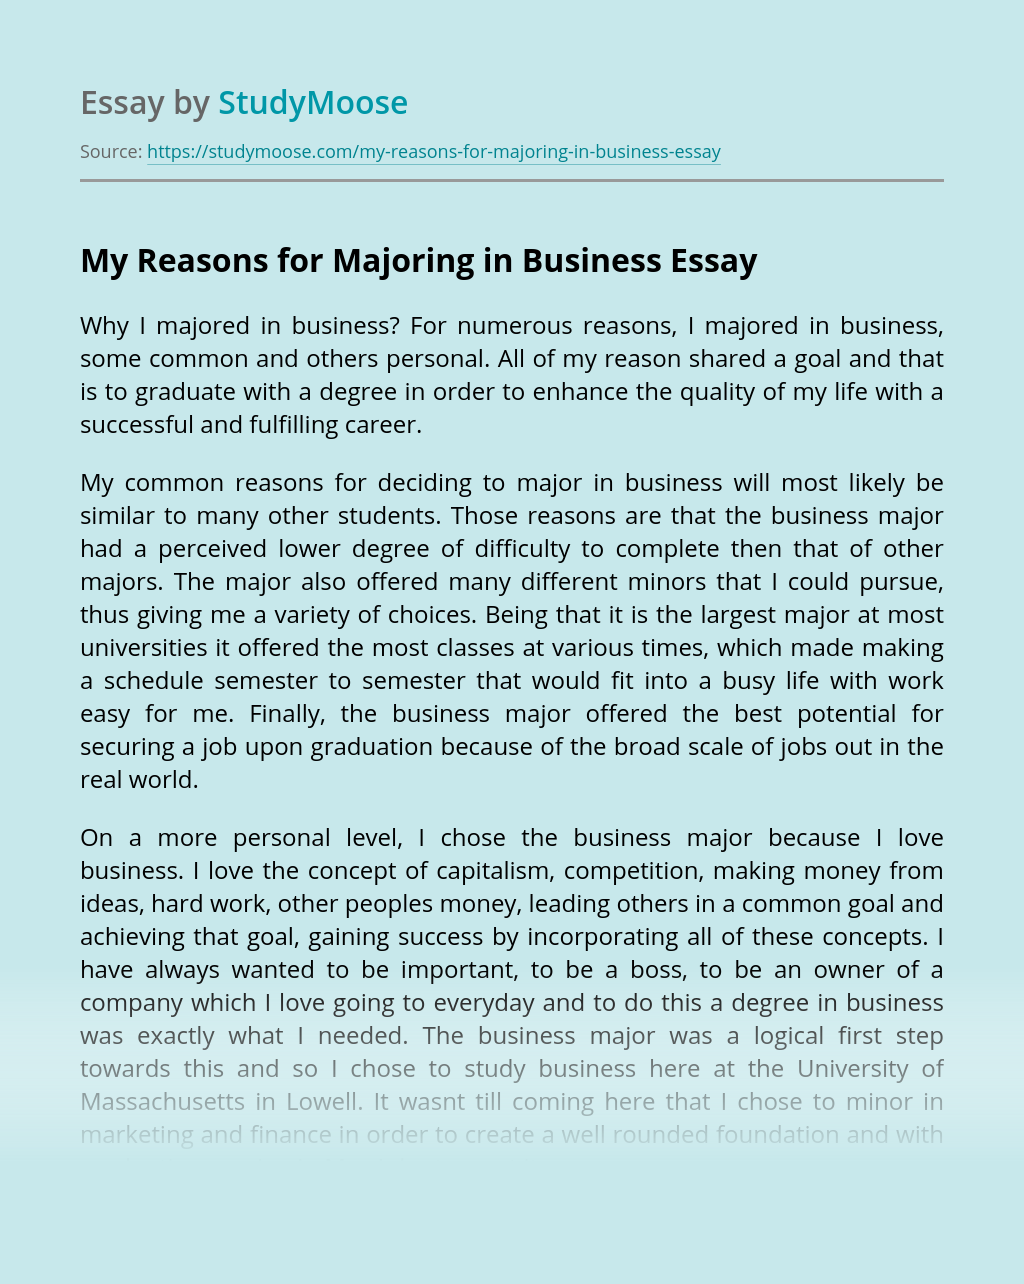 My Reasons for Majoring in Business